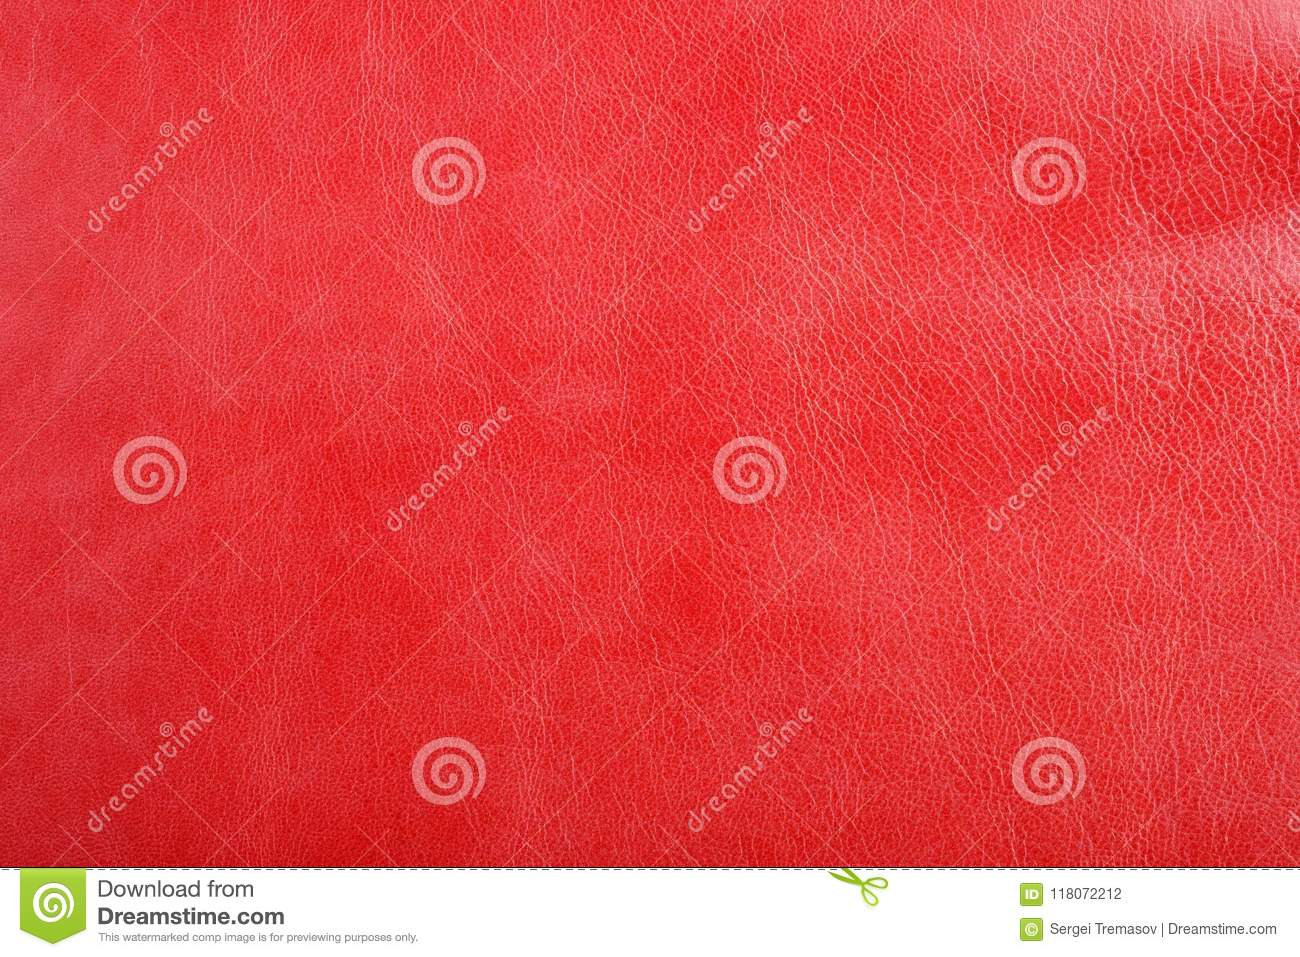 Natural red leather texture background.